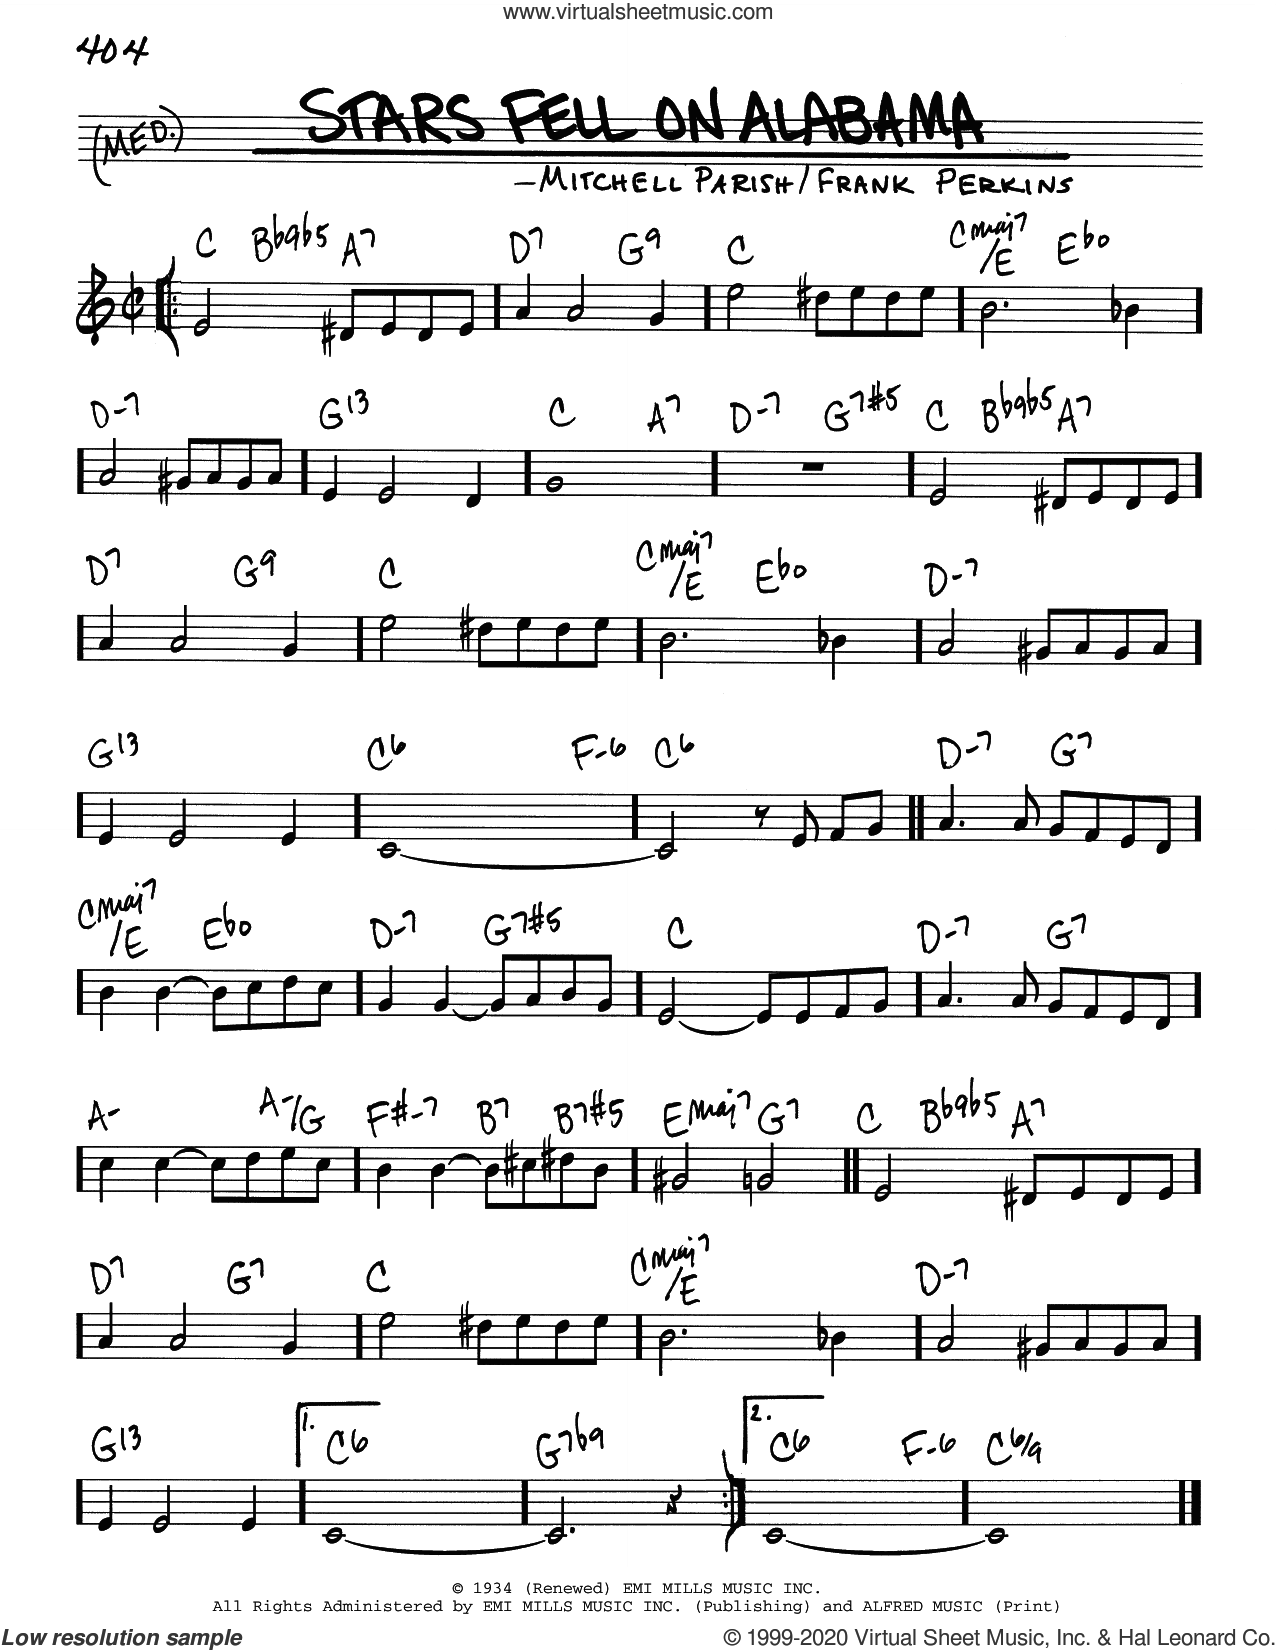 Stars Fell On Alabama sheet music for voice and other instruments (real book) by Mitchell Parish and Frank Perkins, intermediate skill level